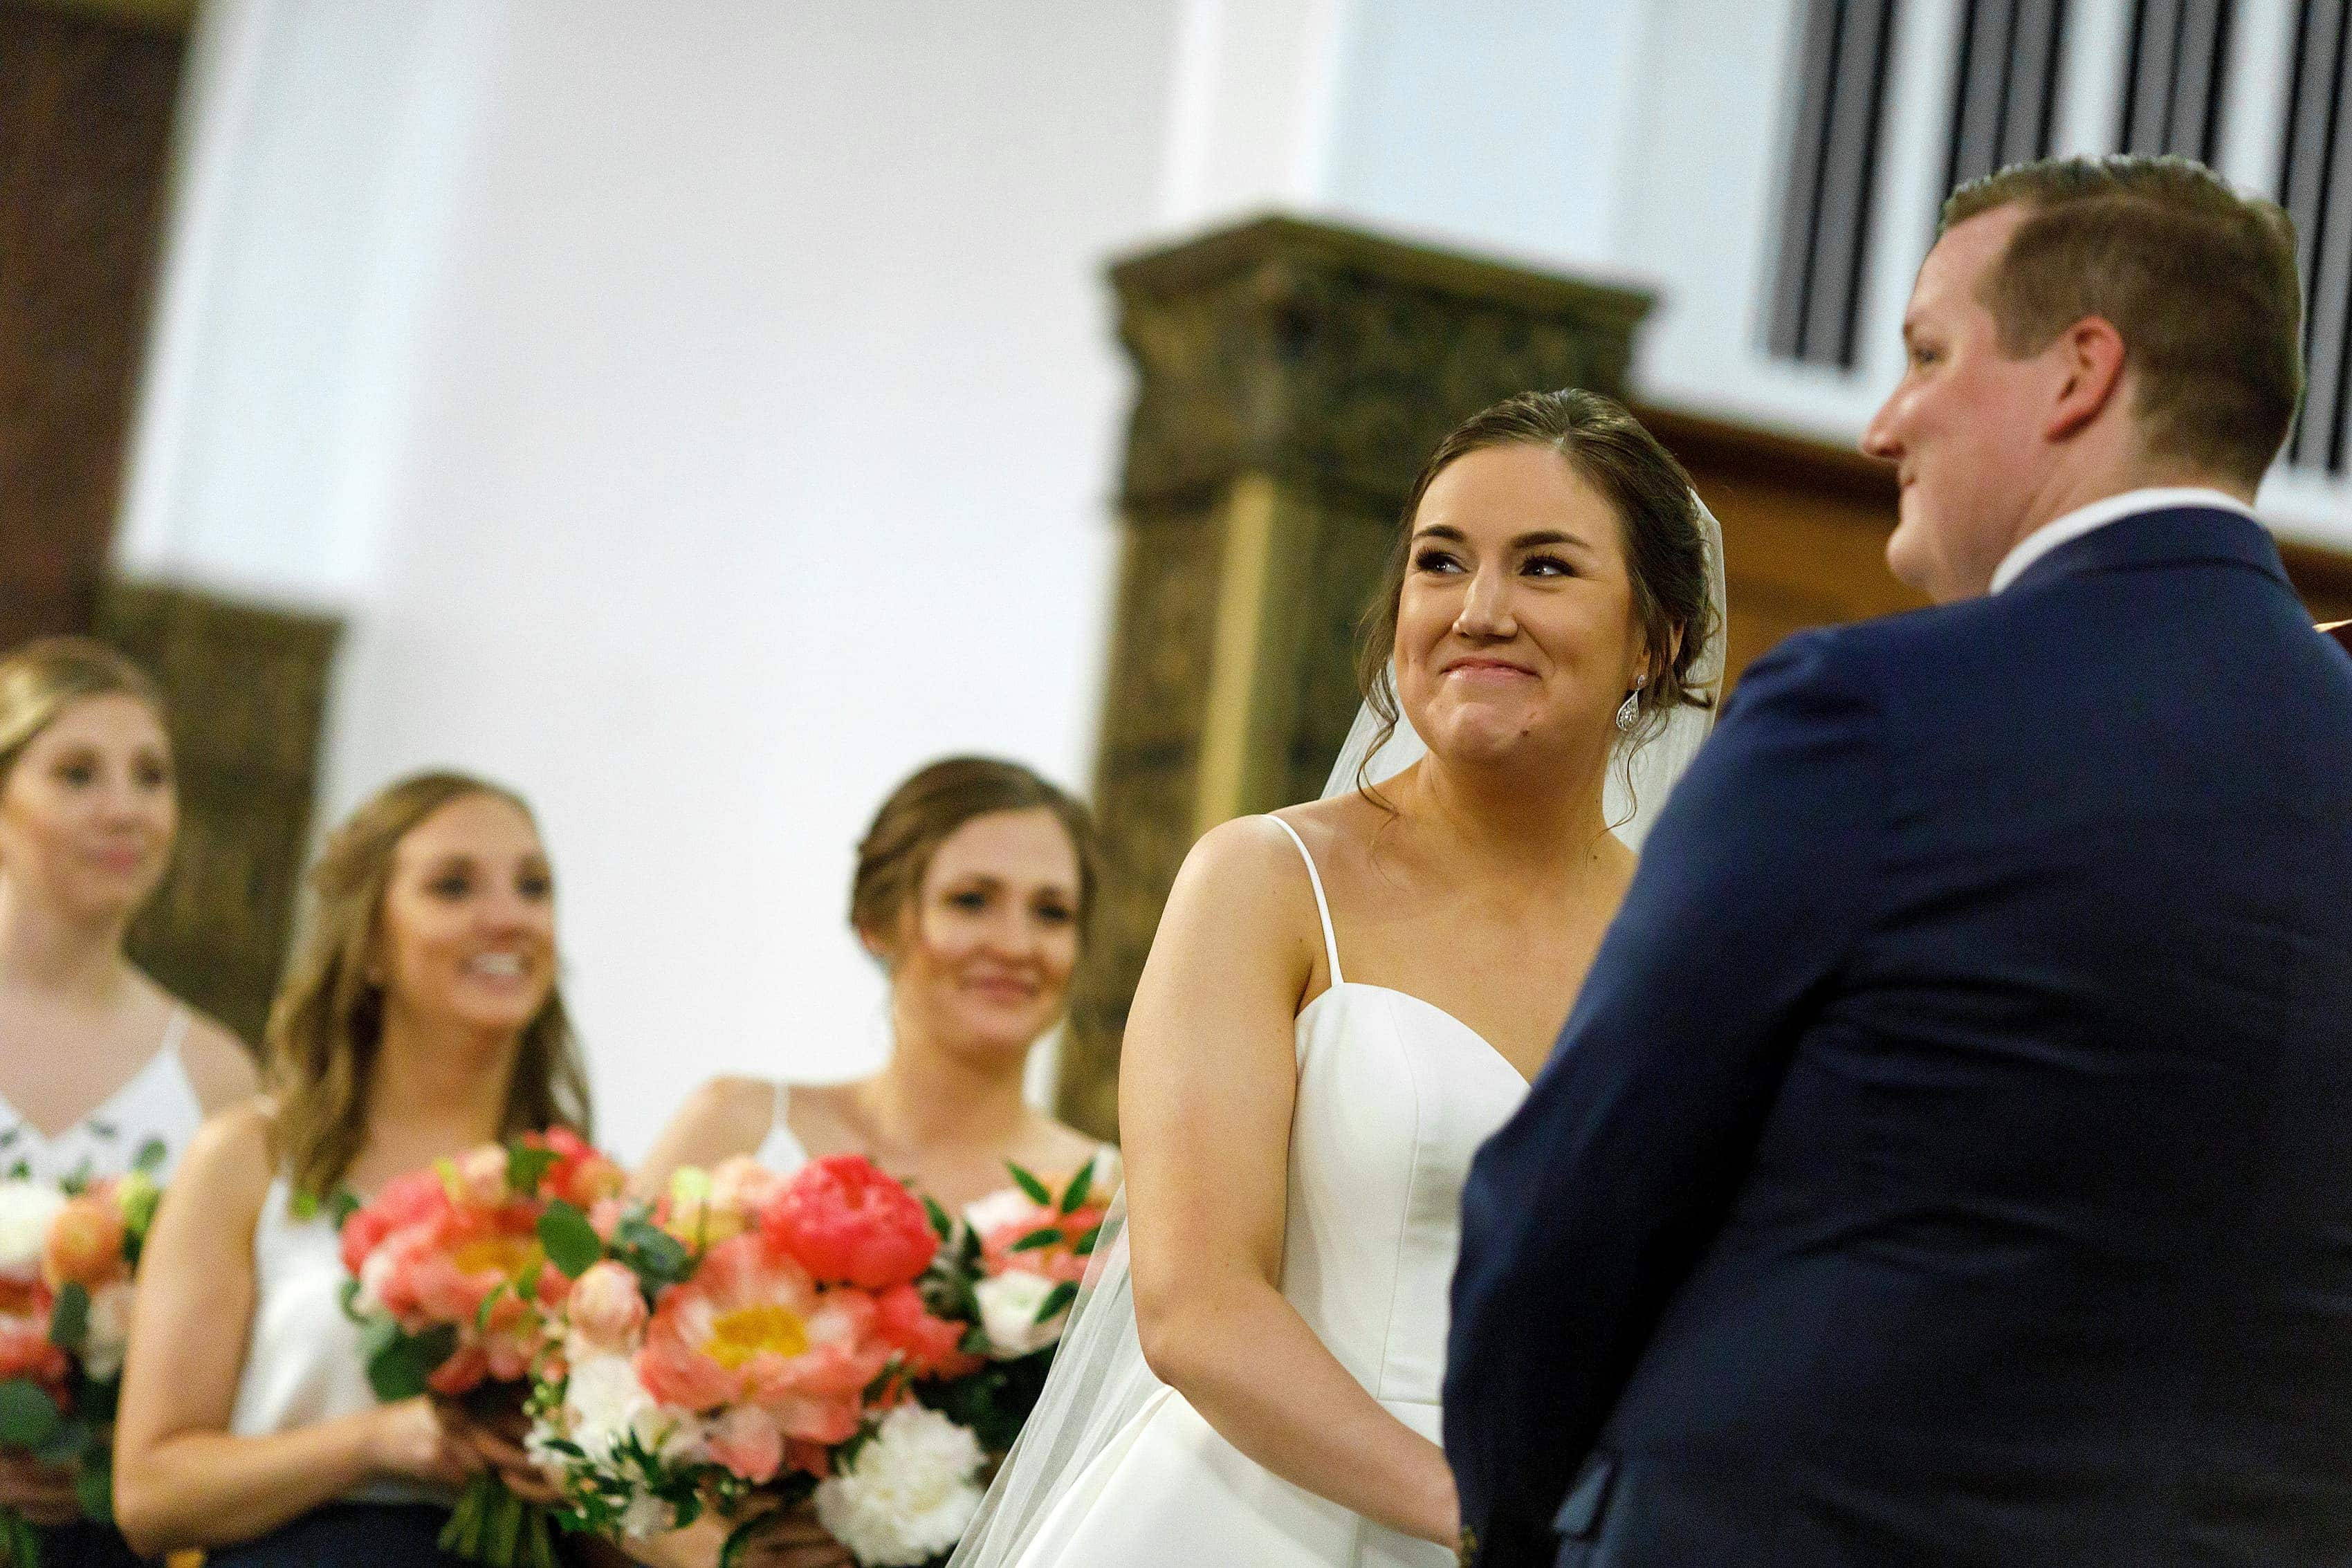 bride and groom smile at guests during wedding ceremony at Church of our Savior